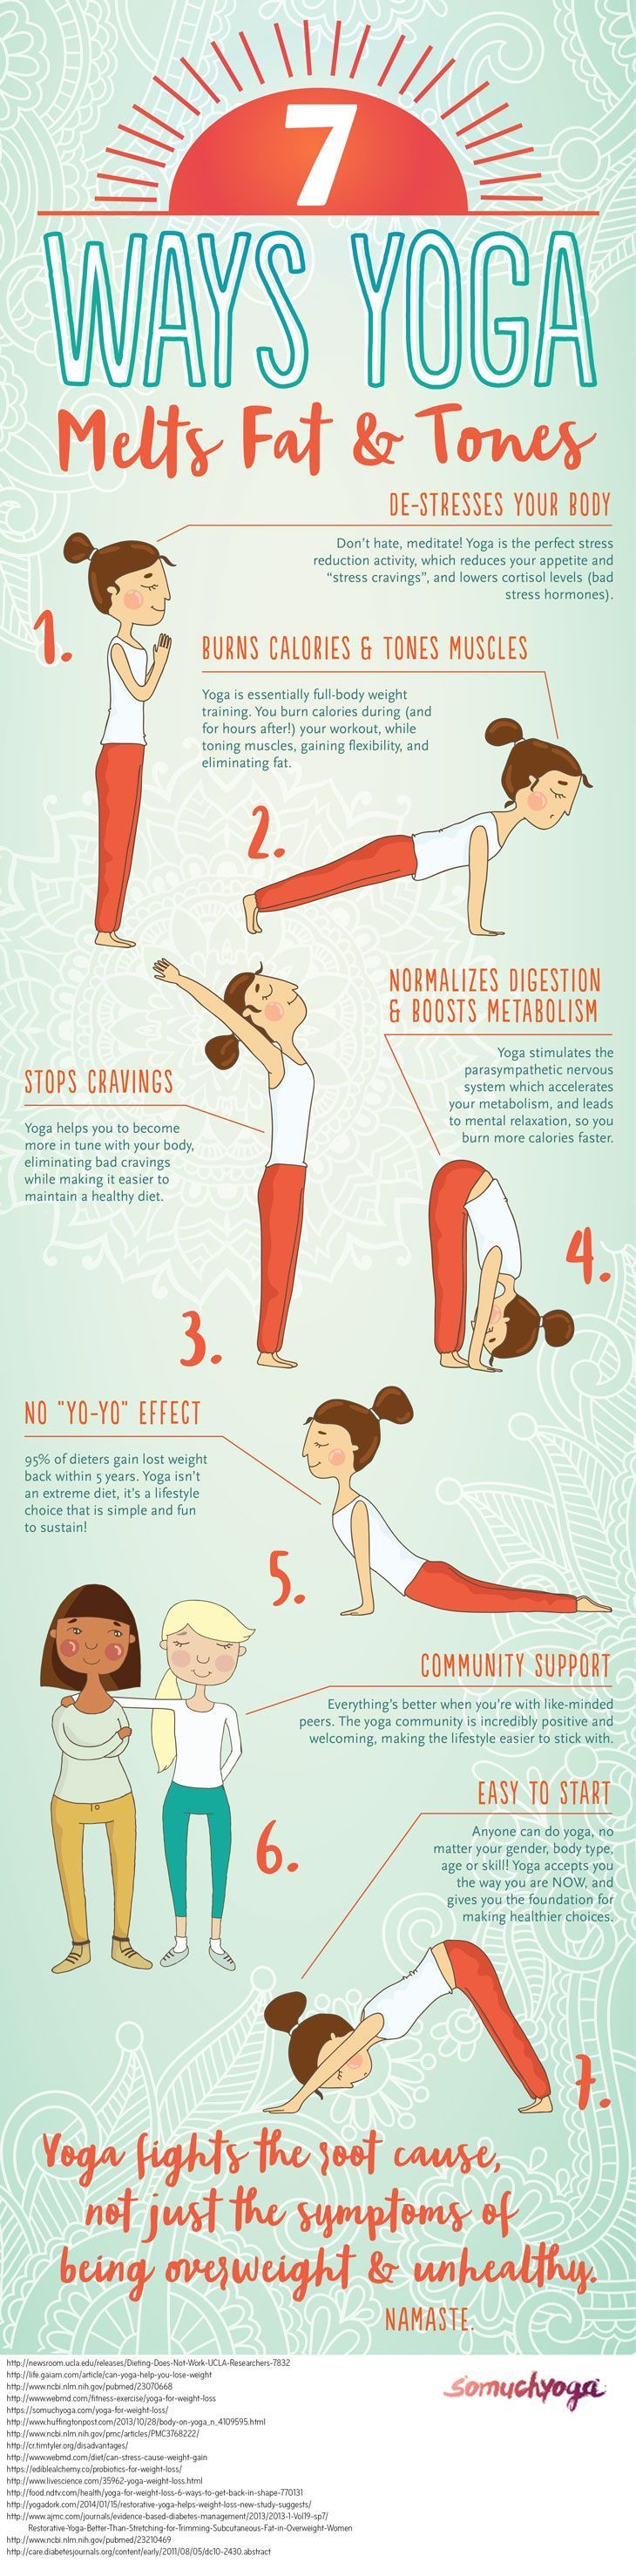 yoga for weight loss infographic